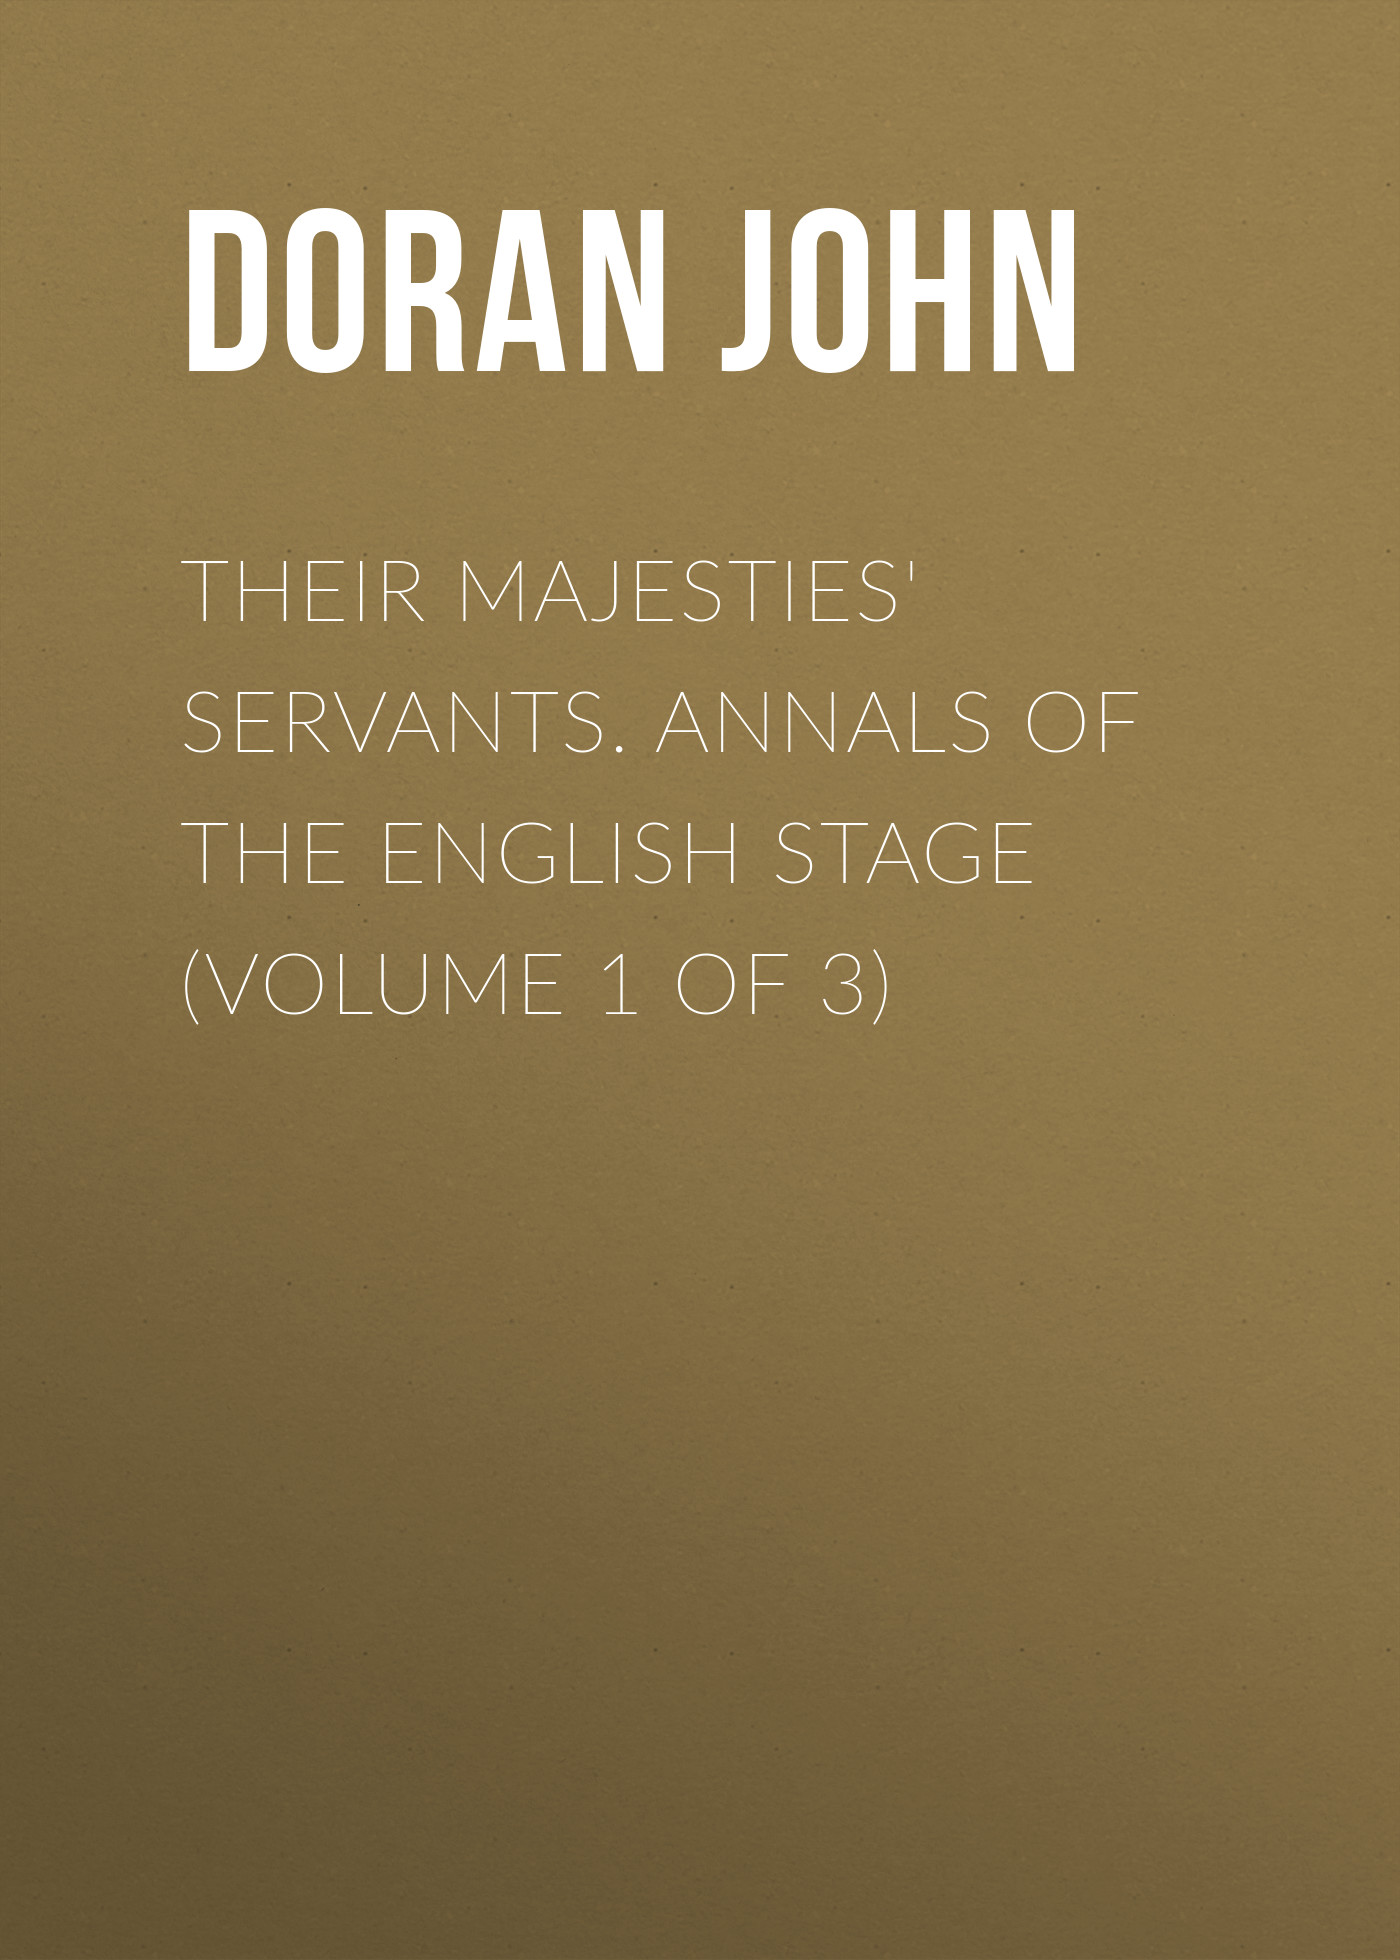 Doran John Their Majesties' Servants. Annals of the English Stage (Volume 1 of 3) the secrets of droon volume 1 books 1 3 page 8